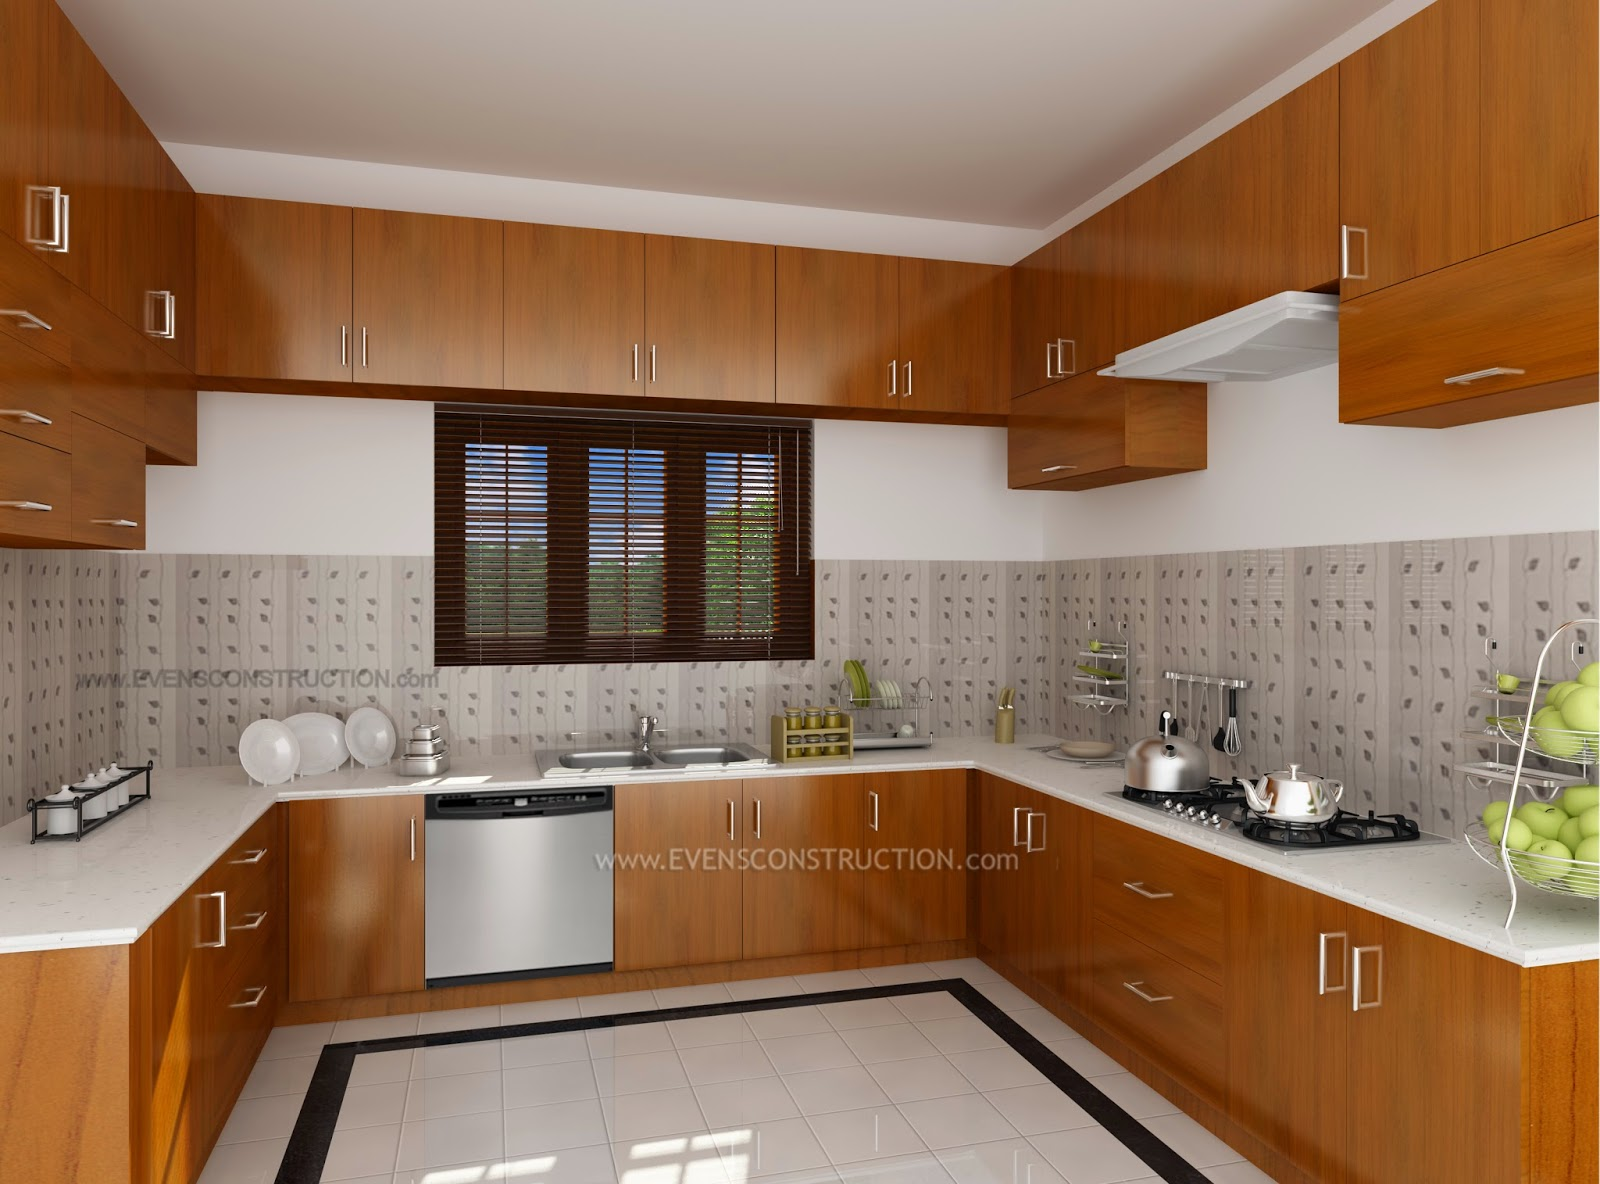 Evens construction pvt ltd october 2014 for House kitchen design